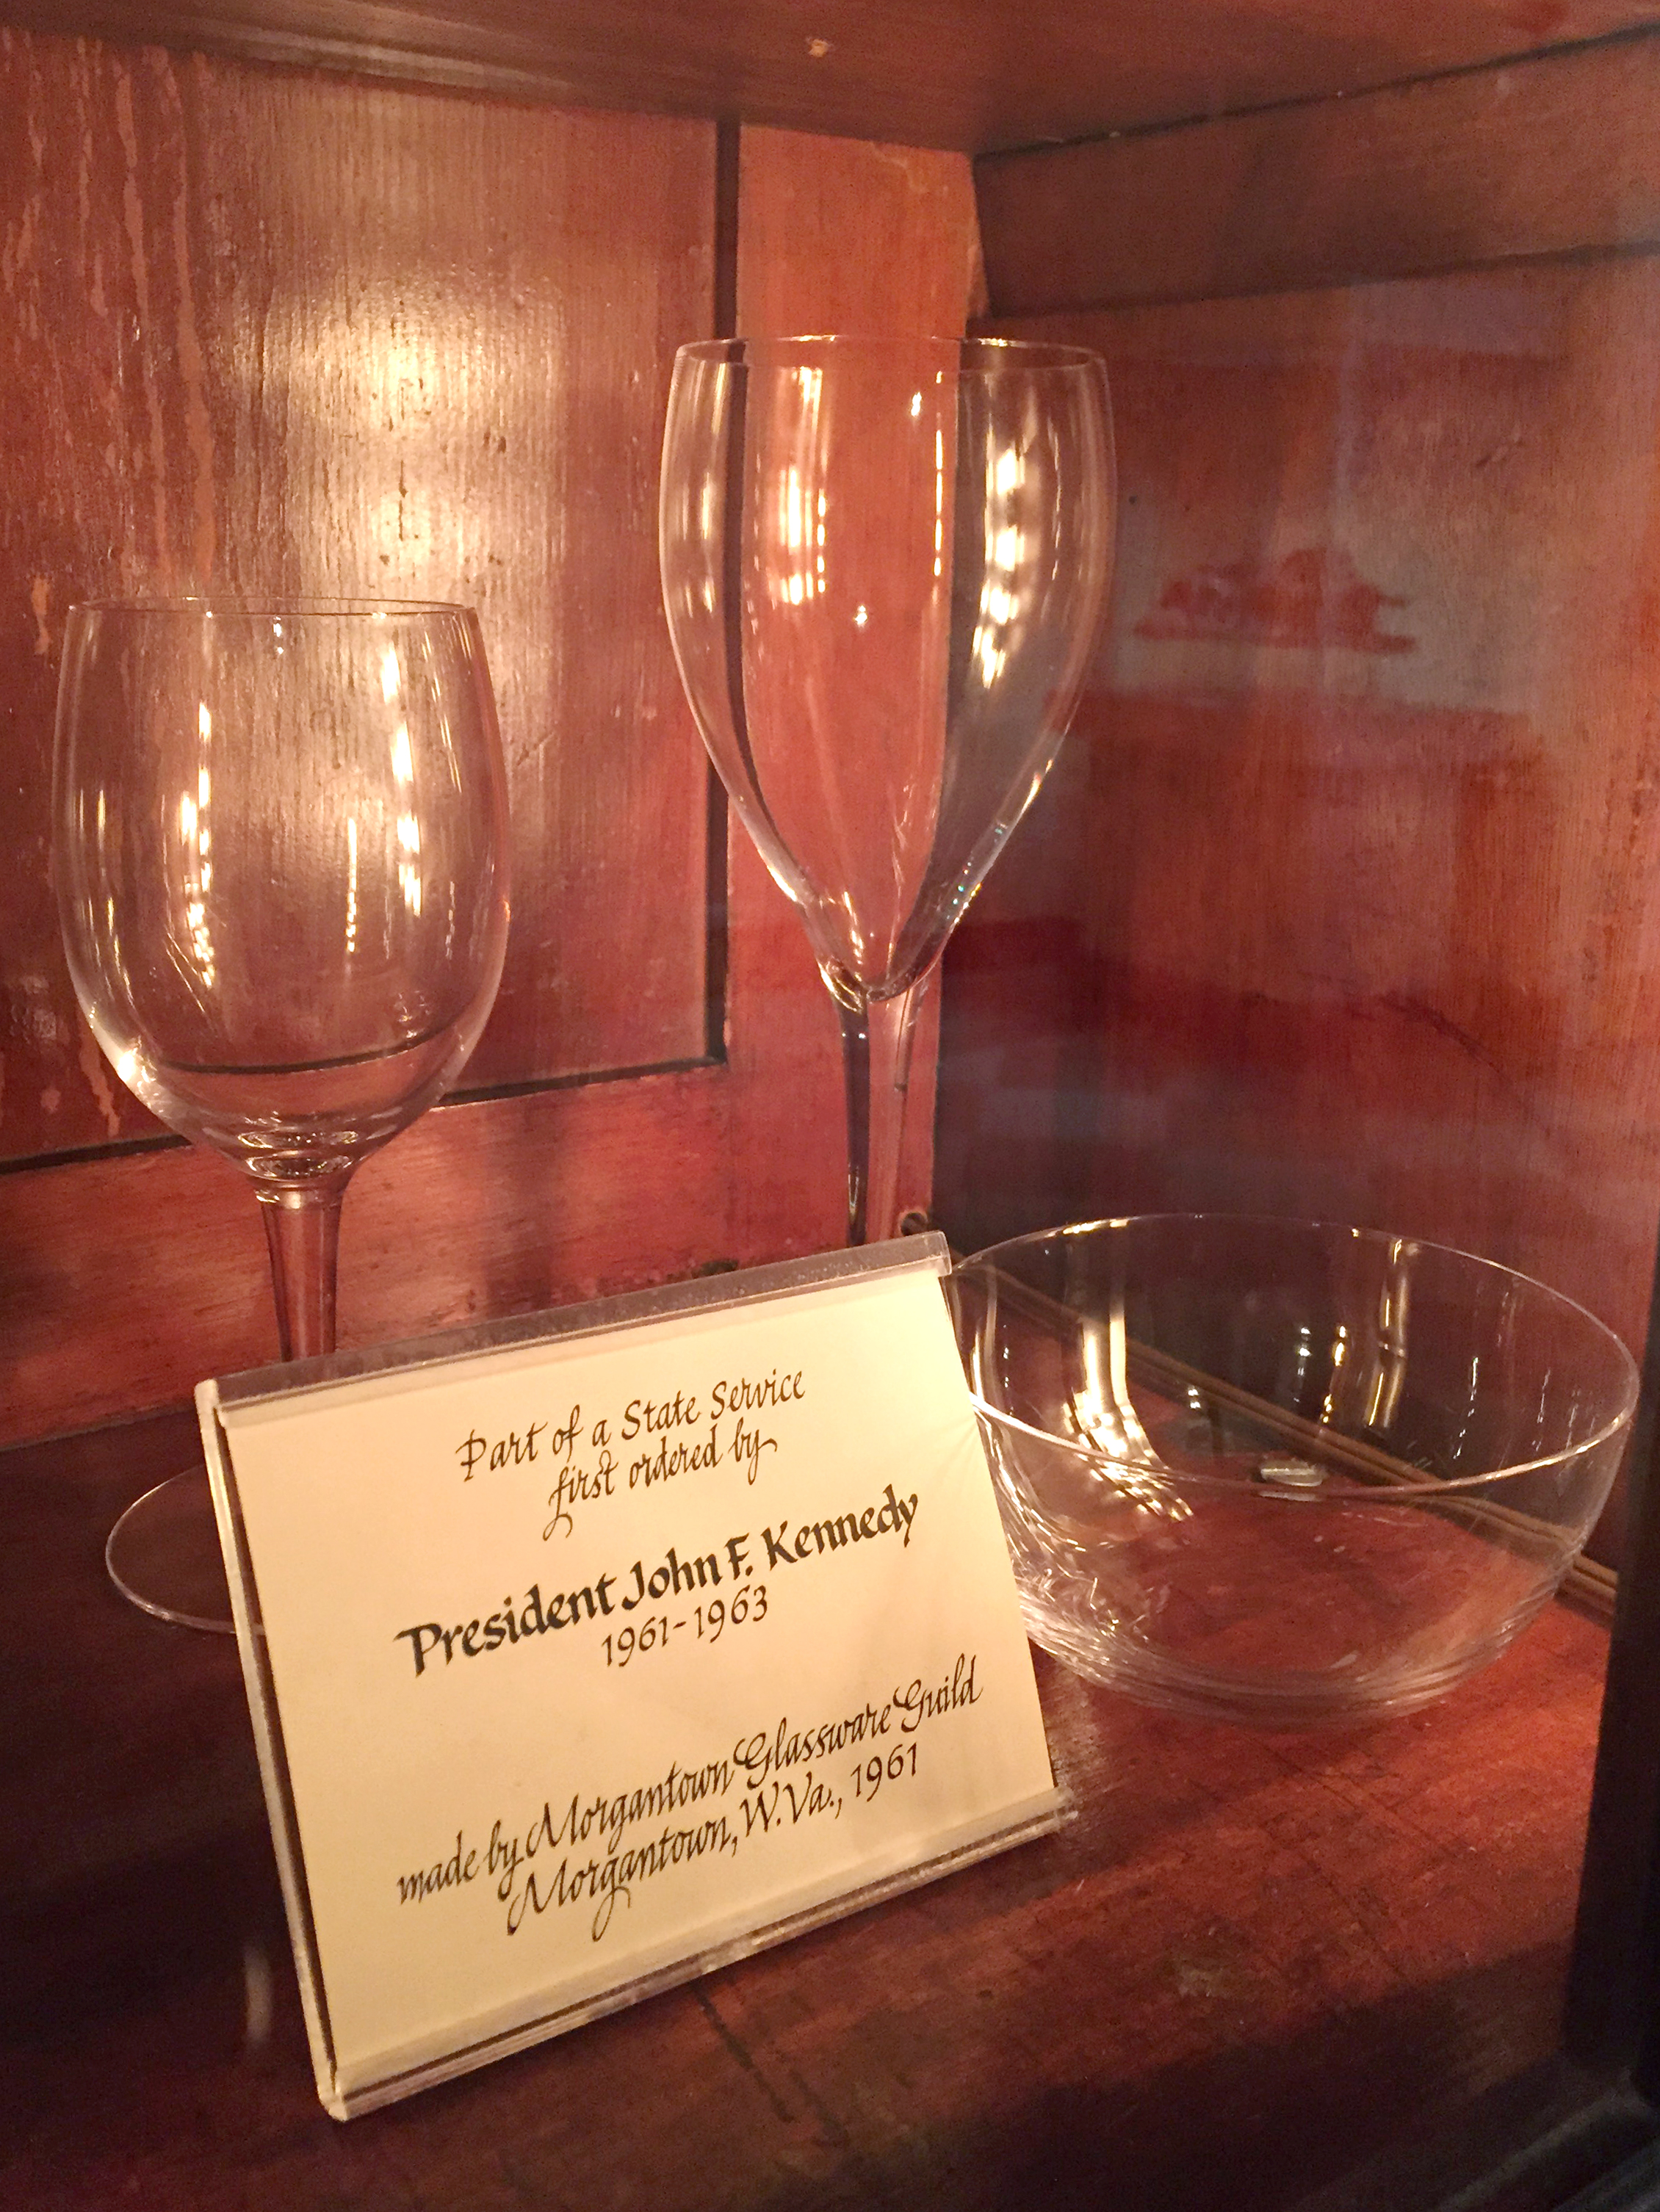 Jacqueline Kennedy selected this style of glassware produced by Morgantown Glassware Guild as the official White House crystal. Photo by Pamela Curtin.